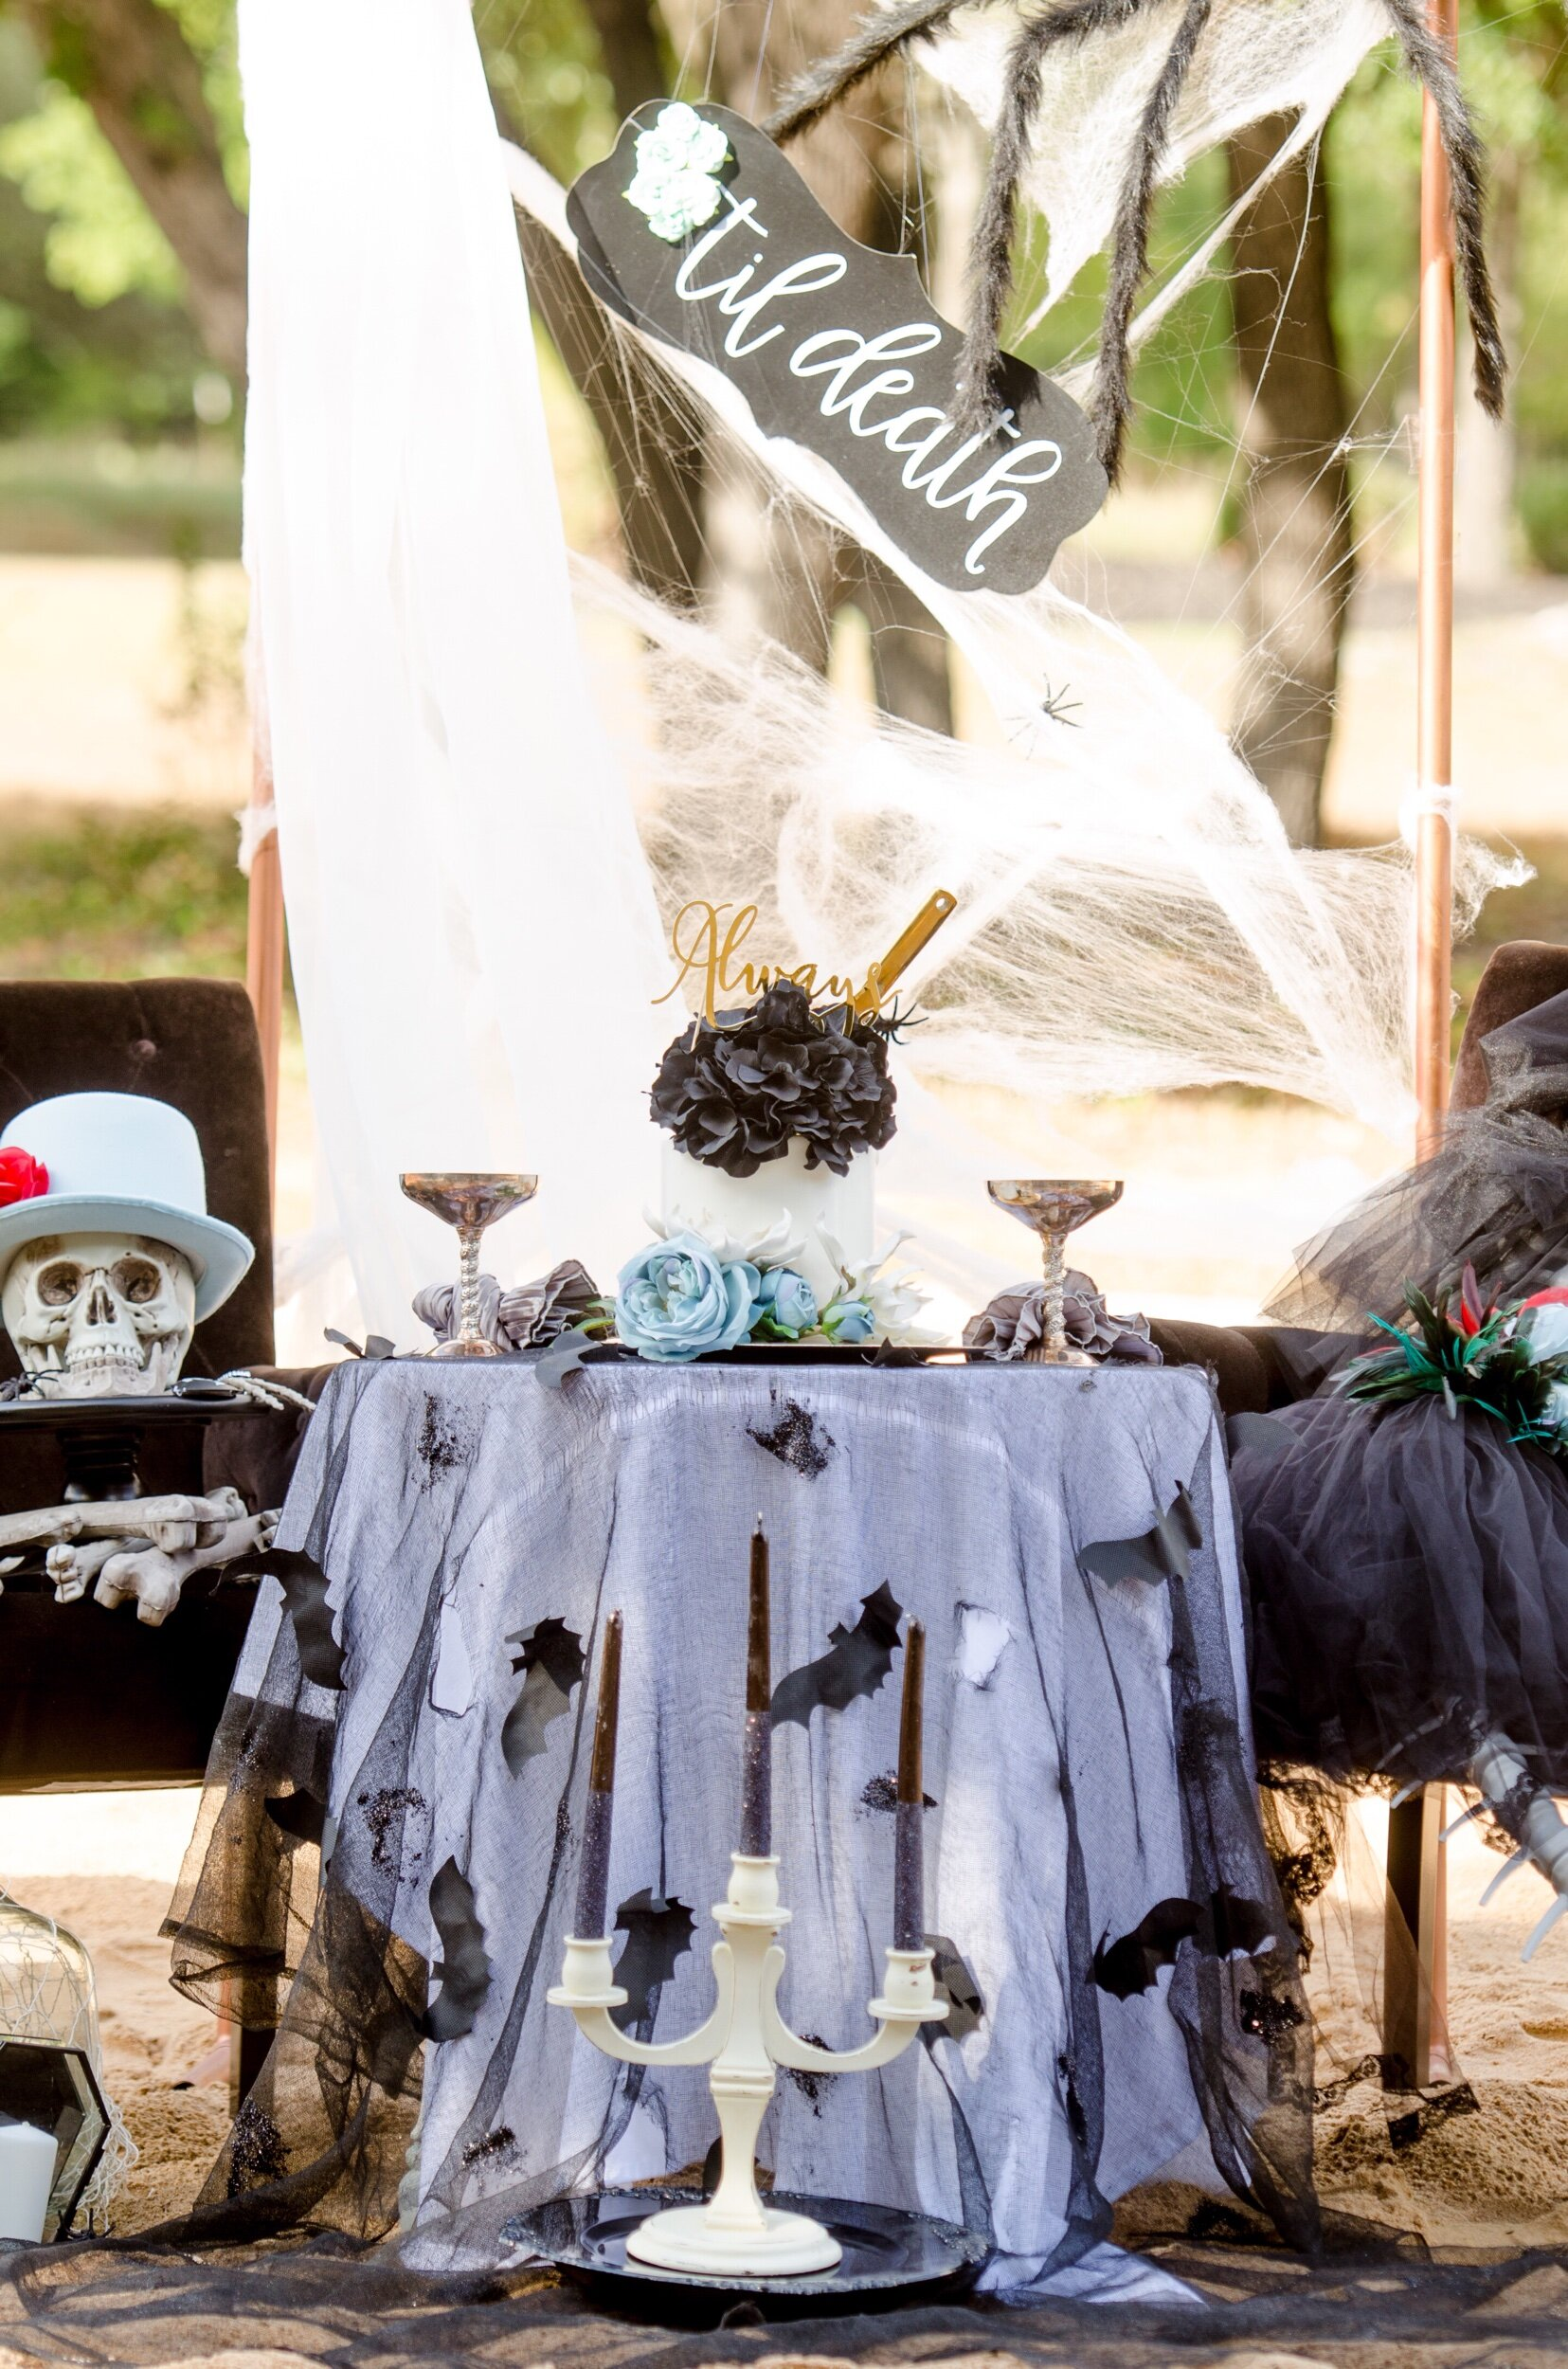 Halloween wedding cake table ideas from Mint Event Design - ripped gauze linen with bats and a candelabra